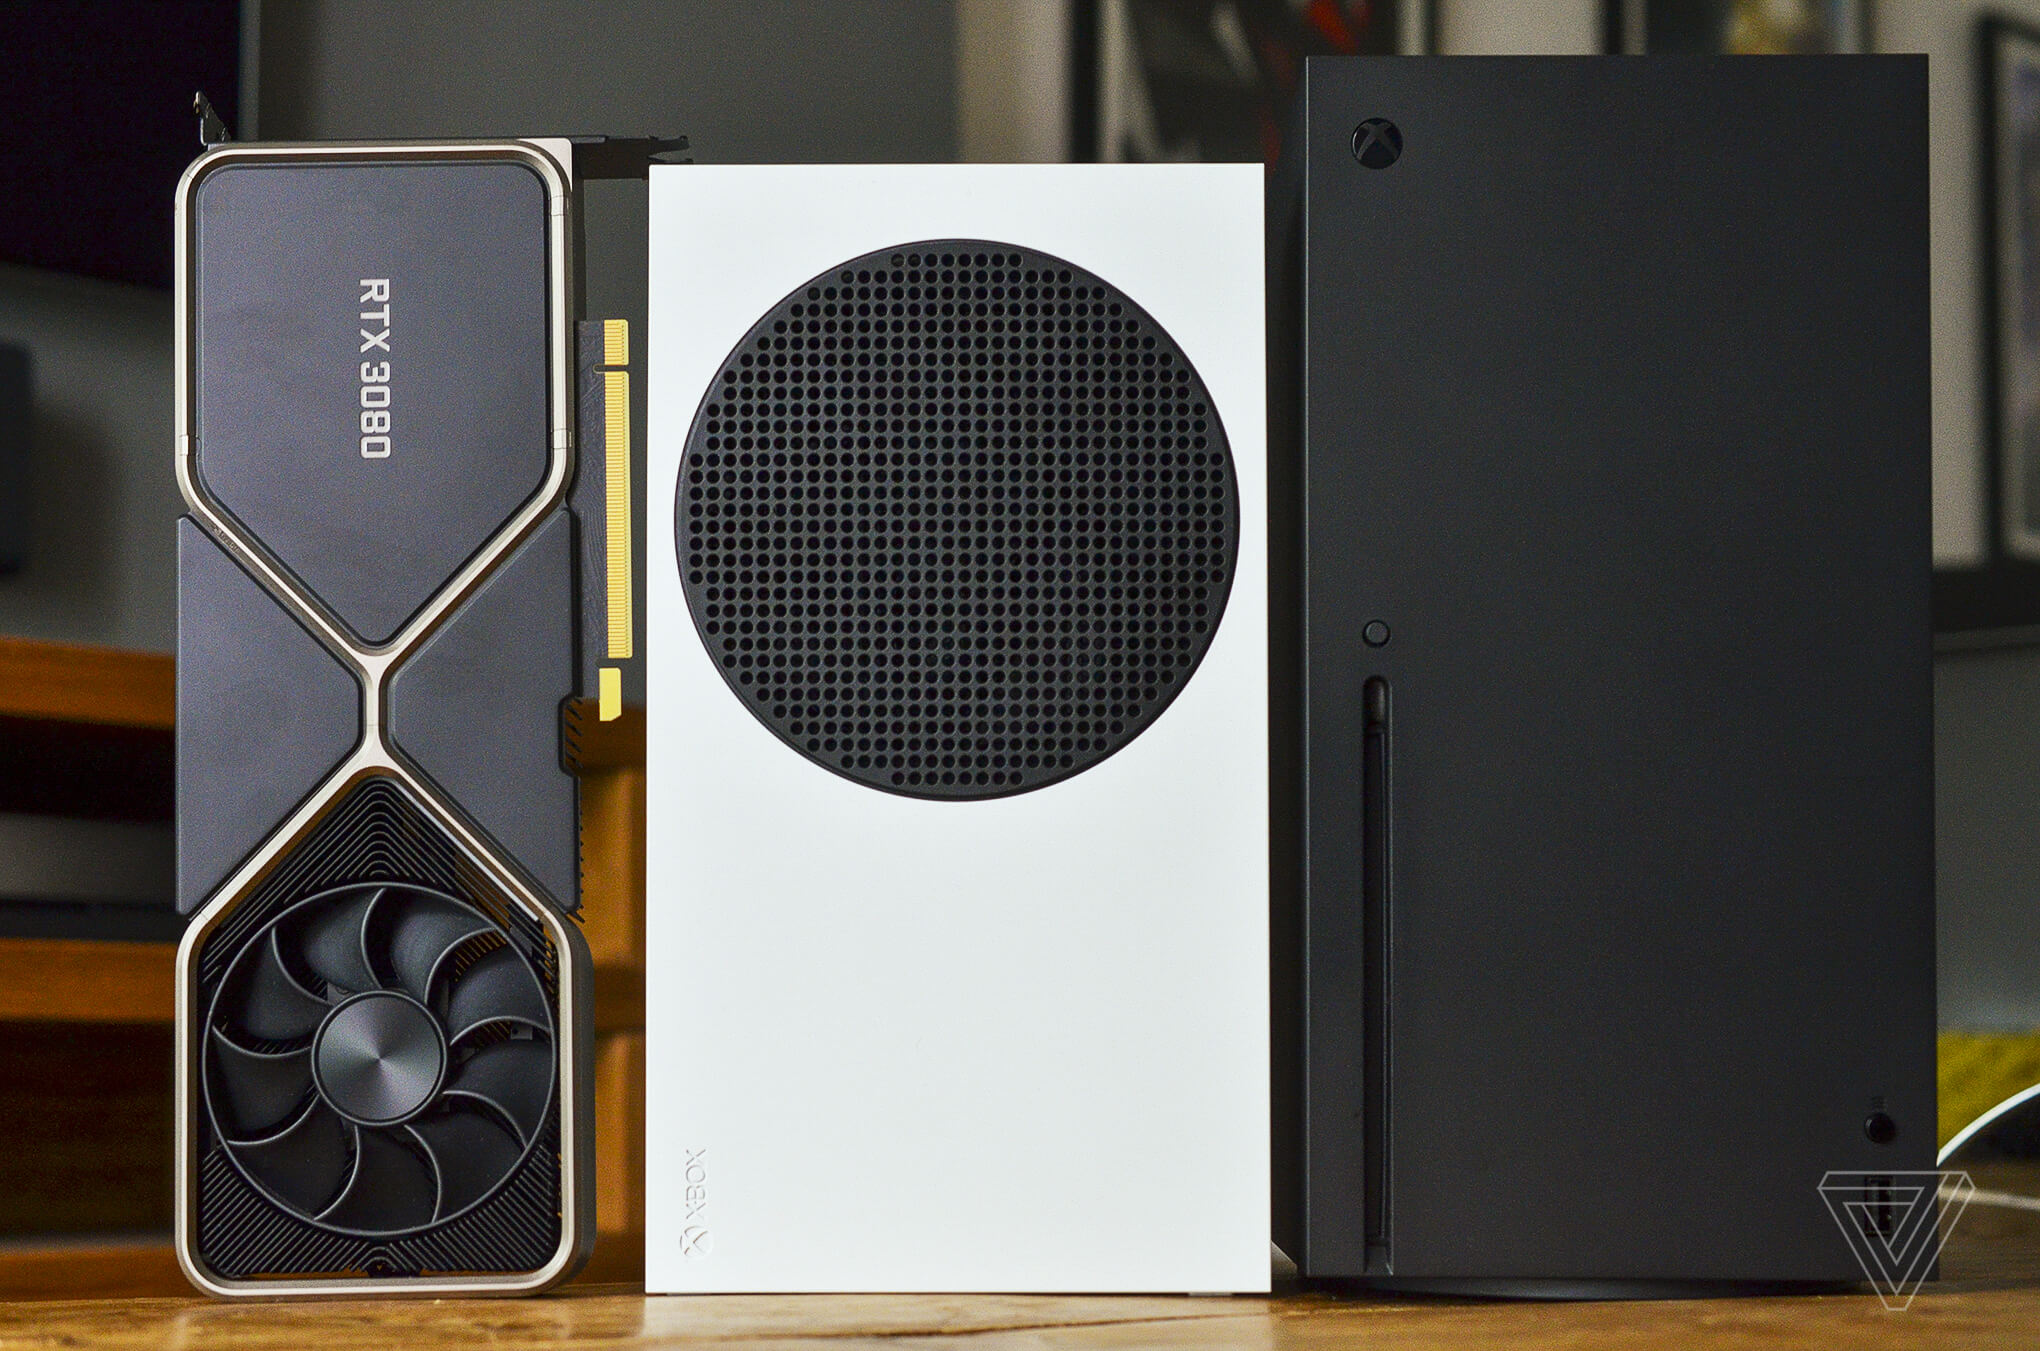 GeForce RTX 3080 and Xbox Series S